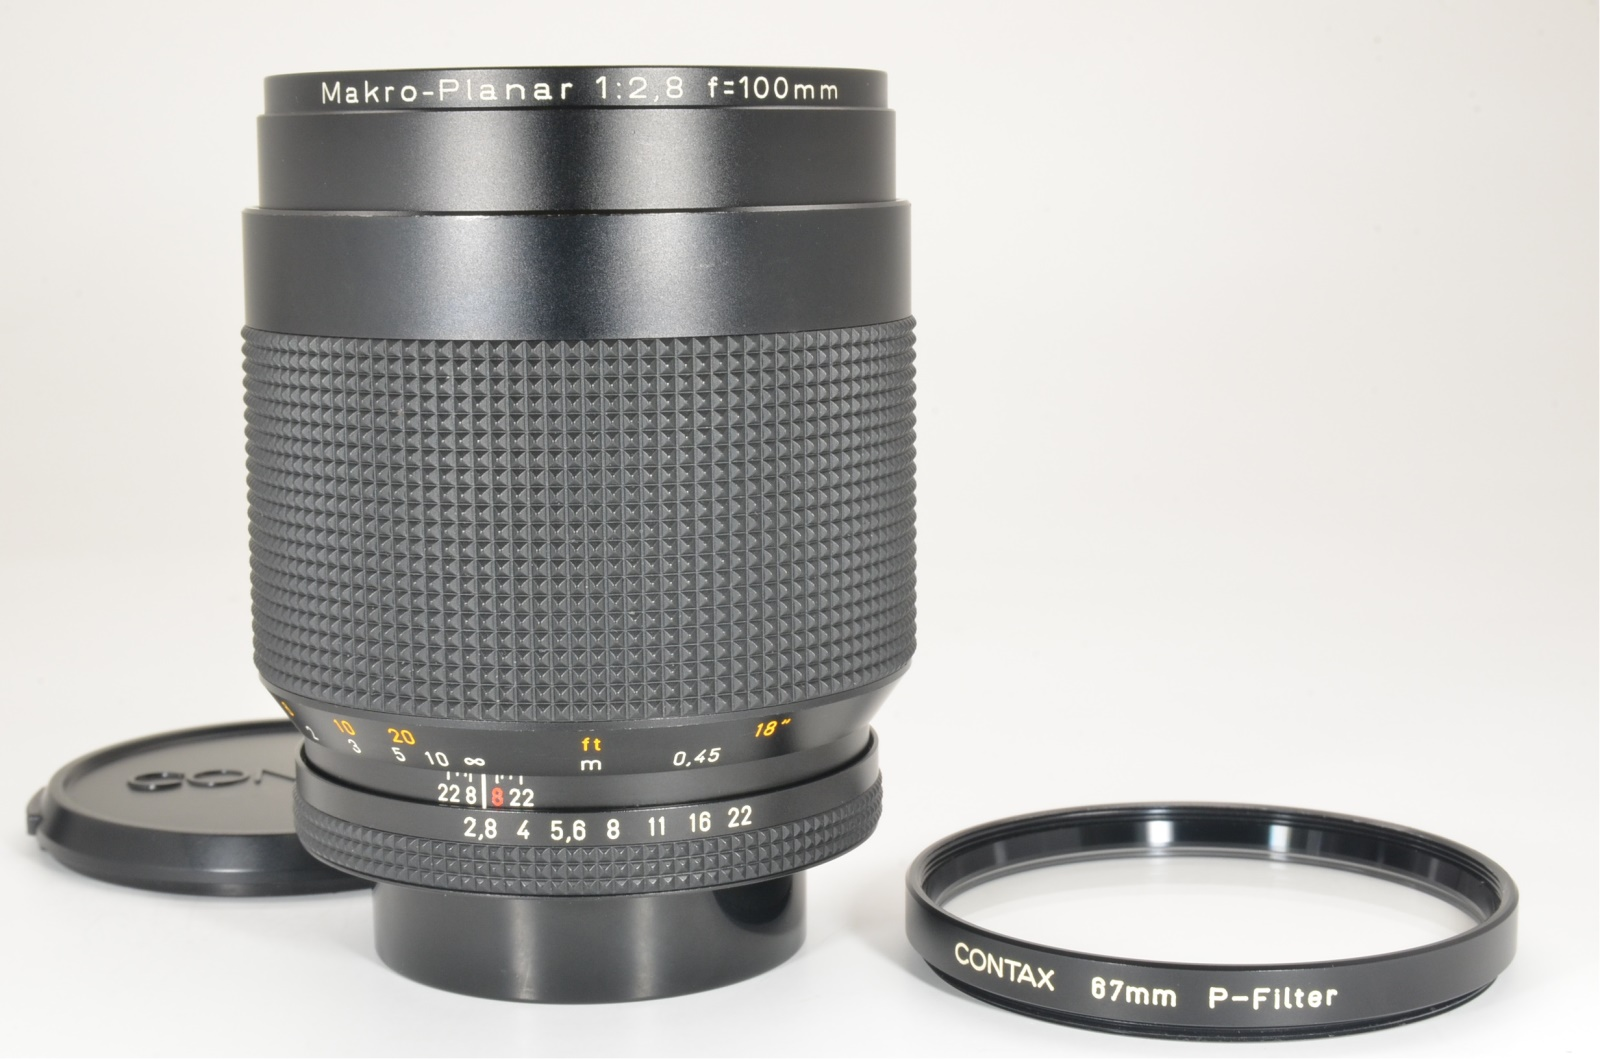 contax carl zeiss makro-planar t* 100mm f2.8 aej japan #a1355 shooting tested